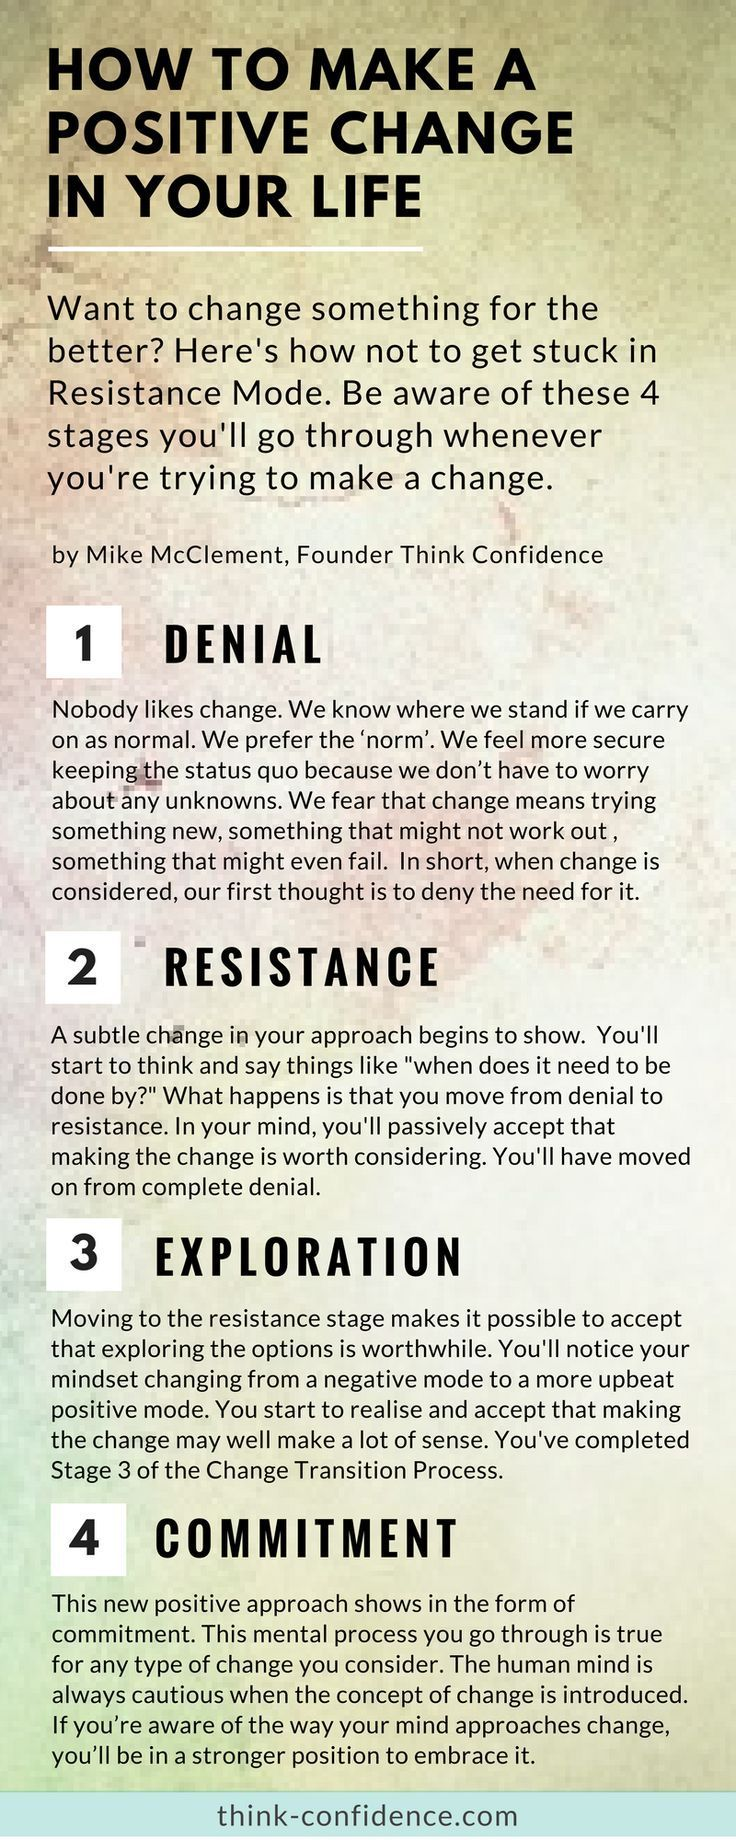 How to successfully make significant changes in your life. Learn how to overcome the resistance you'll naturally feel about change. Don't get stuck in resistance mode. #change #selfconfidence #tips #infographic